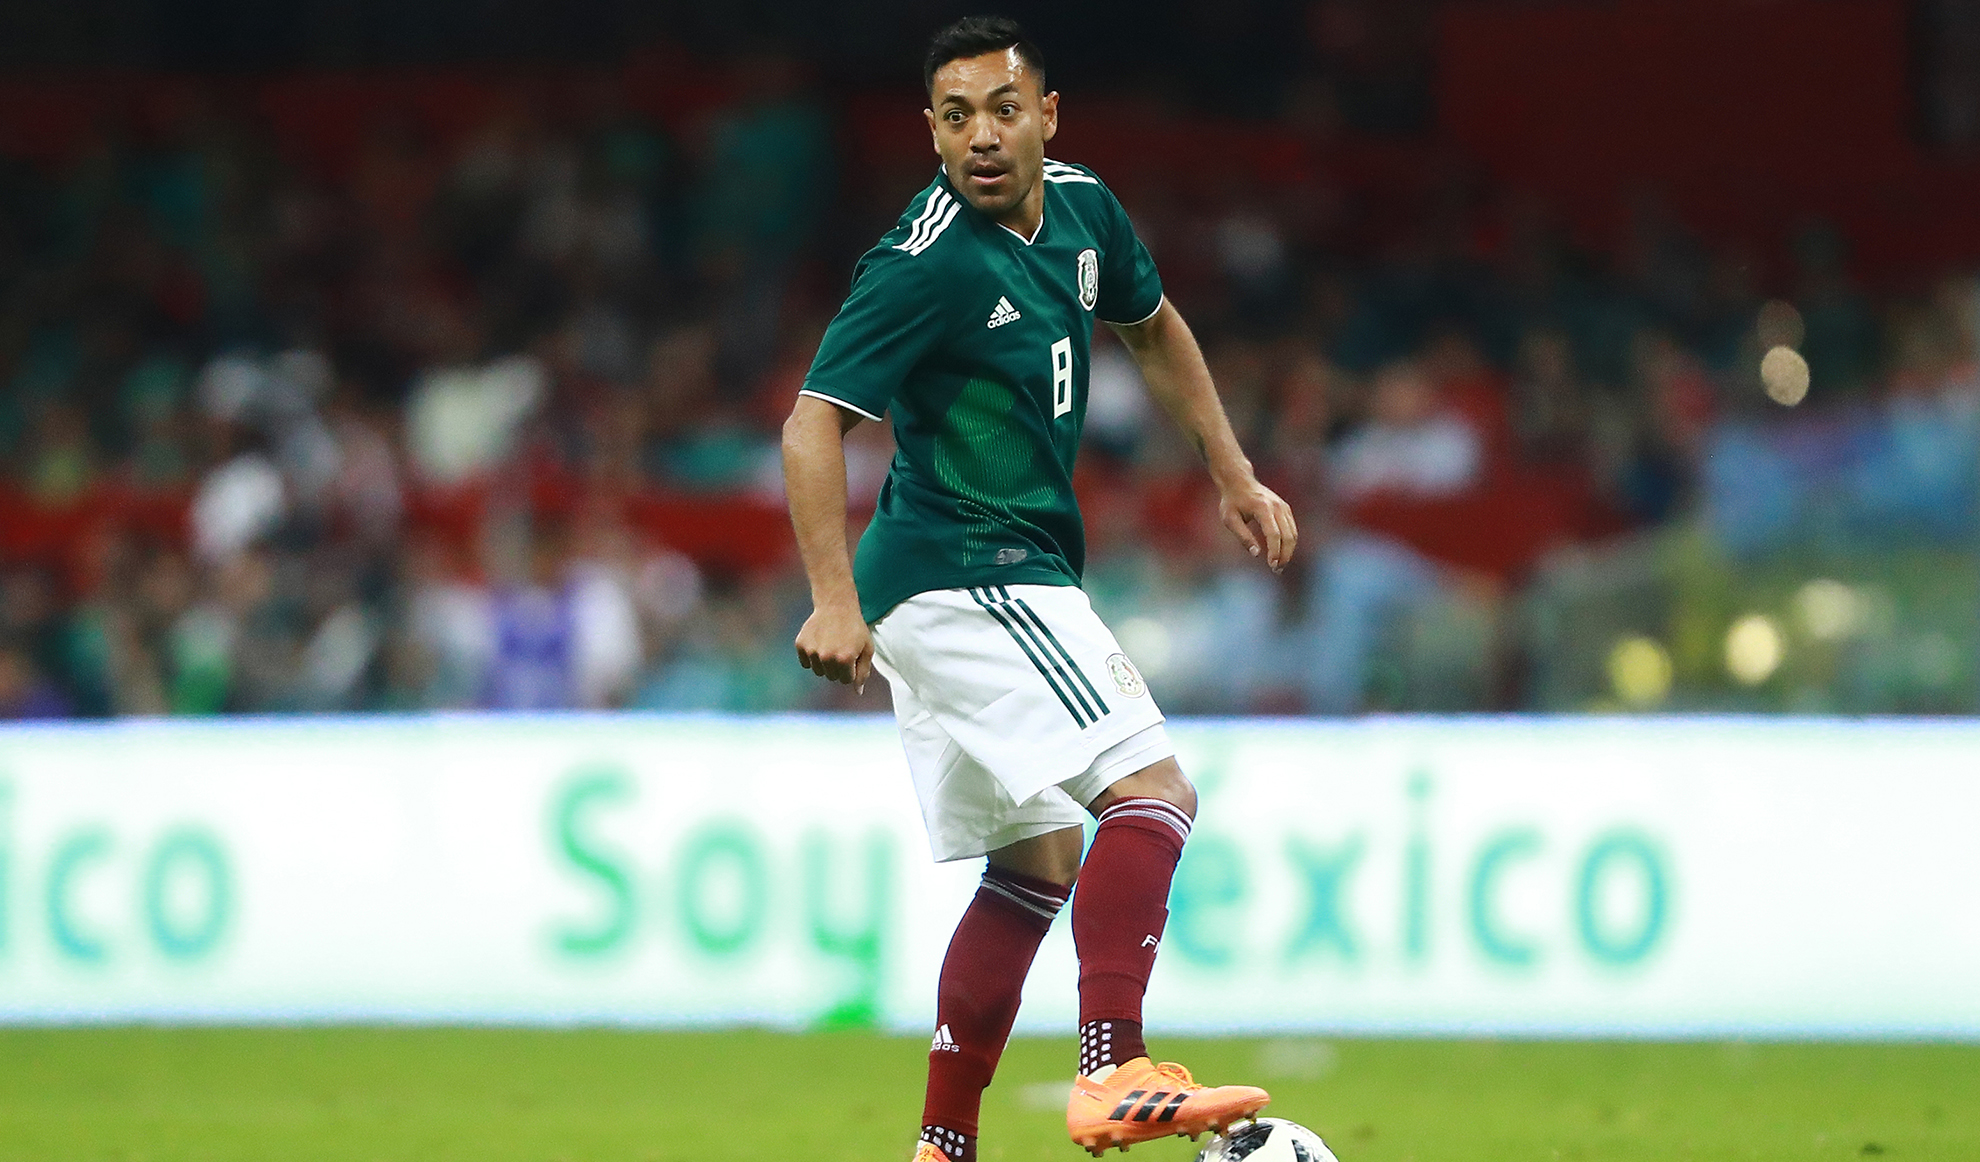 Besiktas, interested in getting the services of Marco Fabián